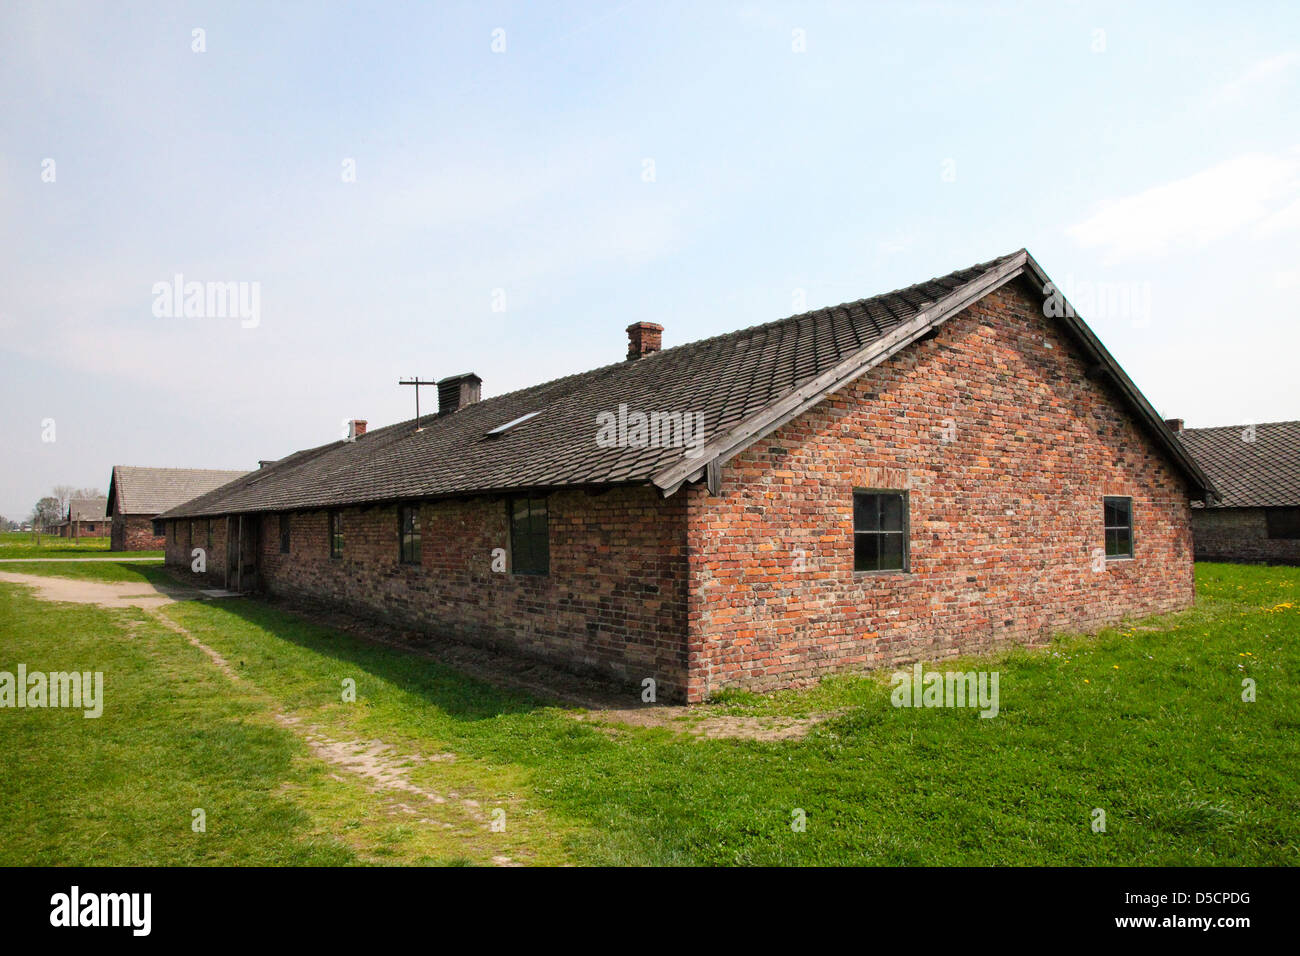 Auschwitz Camp, a former Nazi extermination camp in Poland. - Stock Image